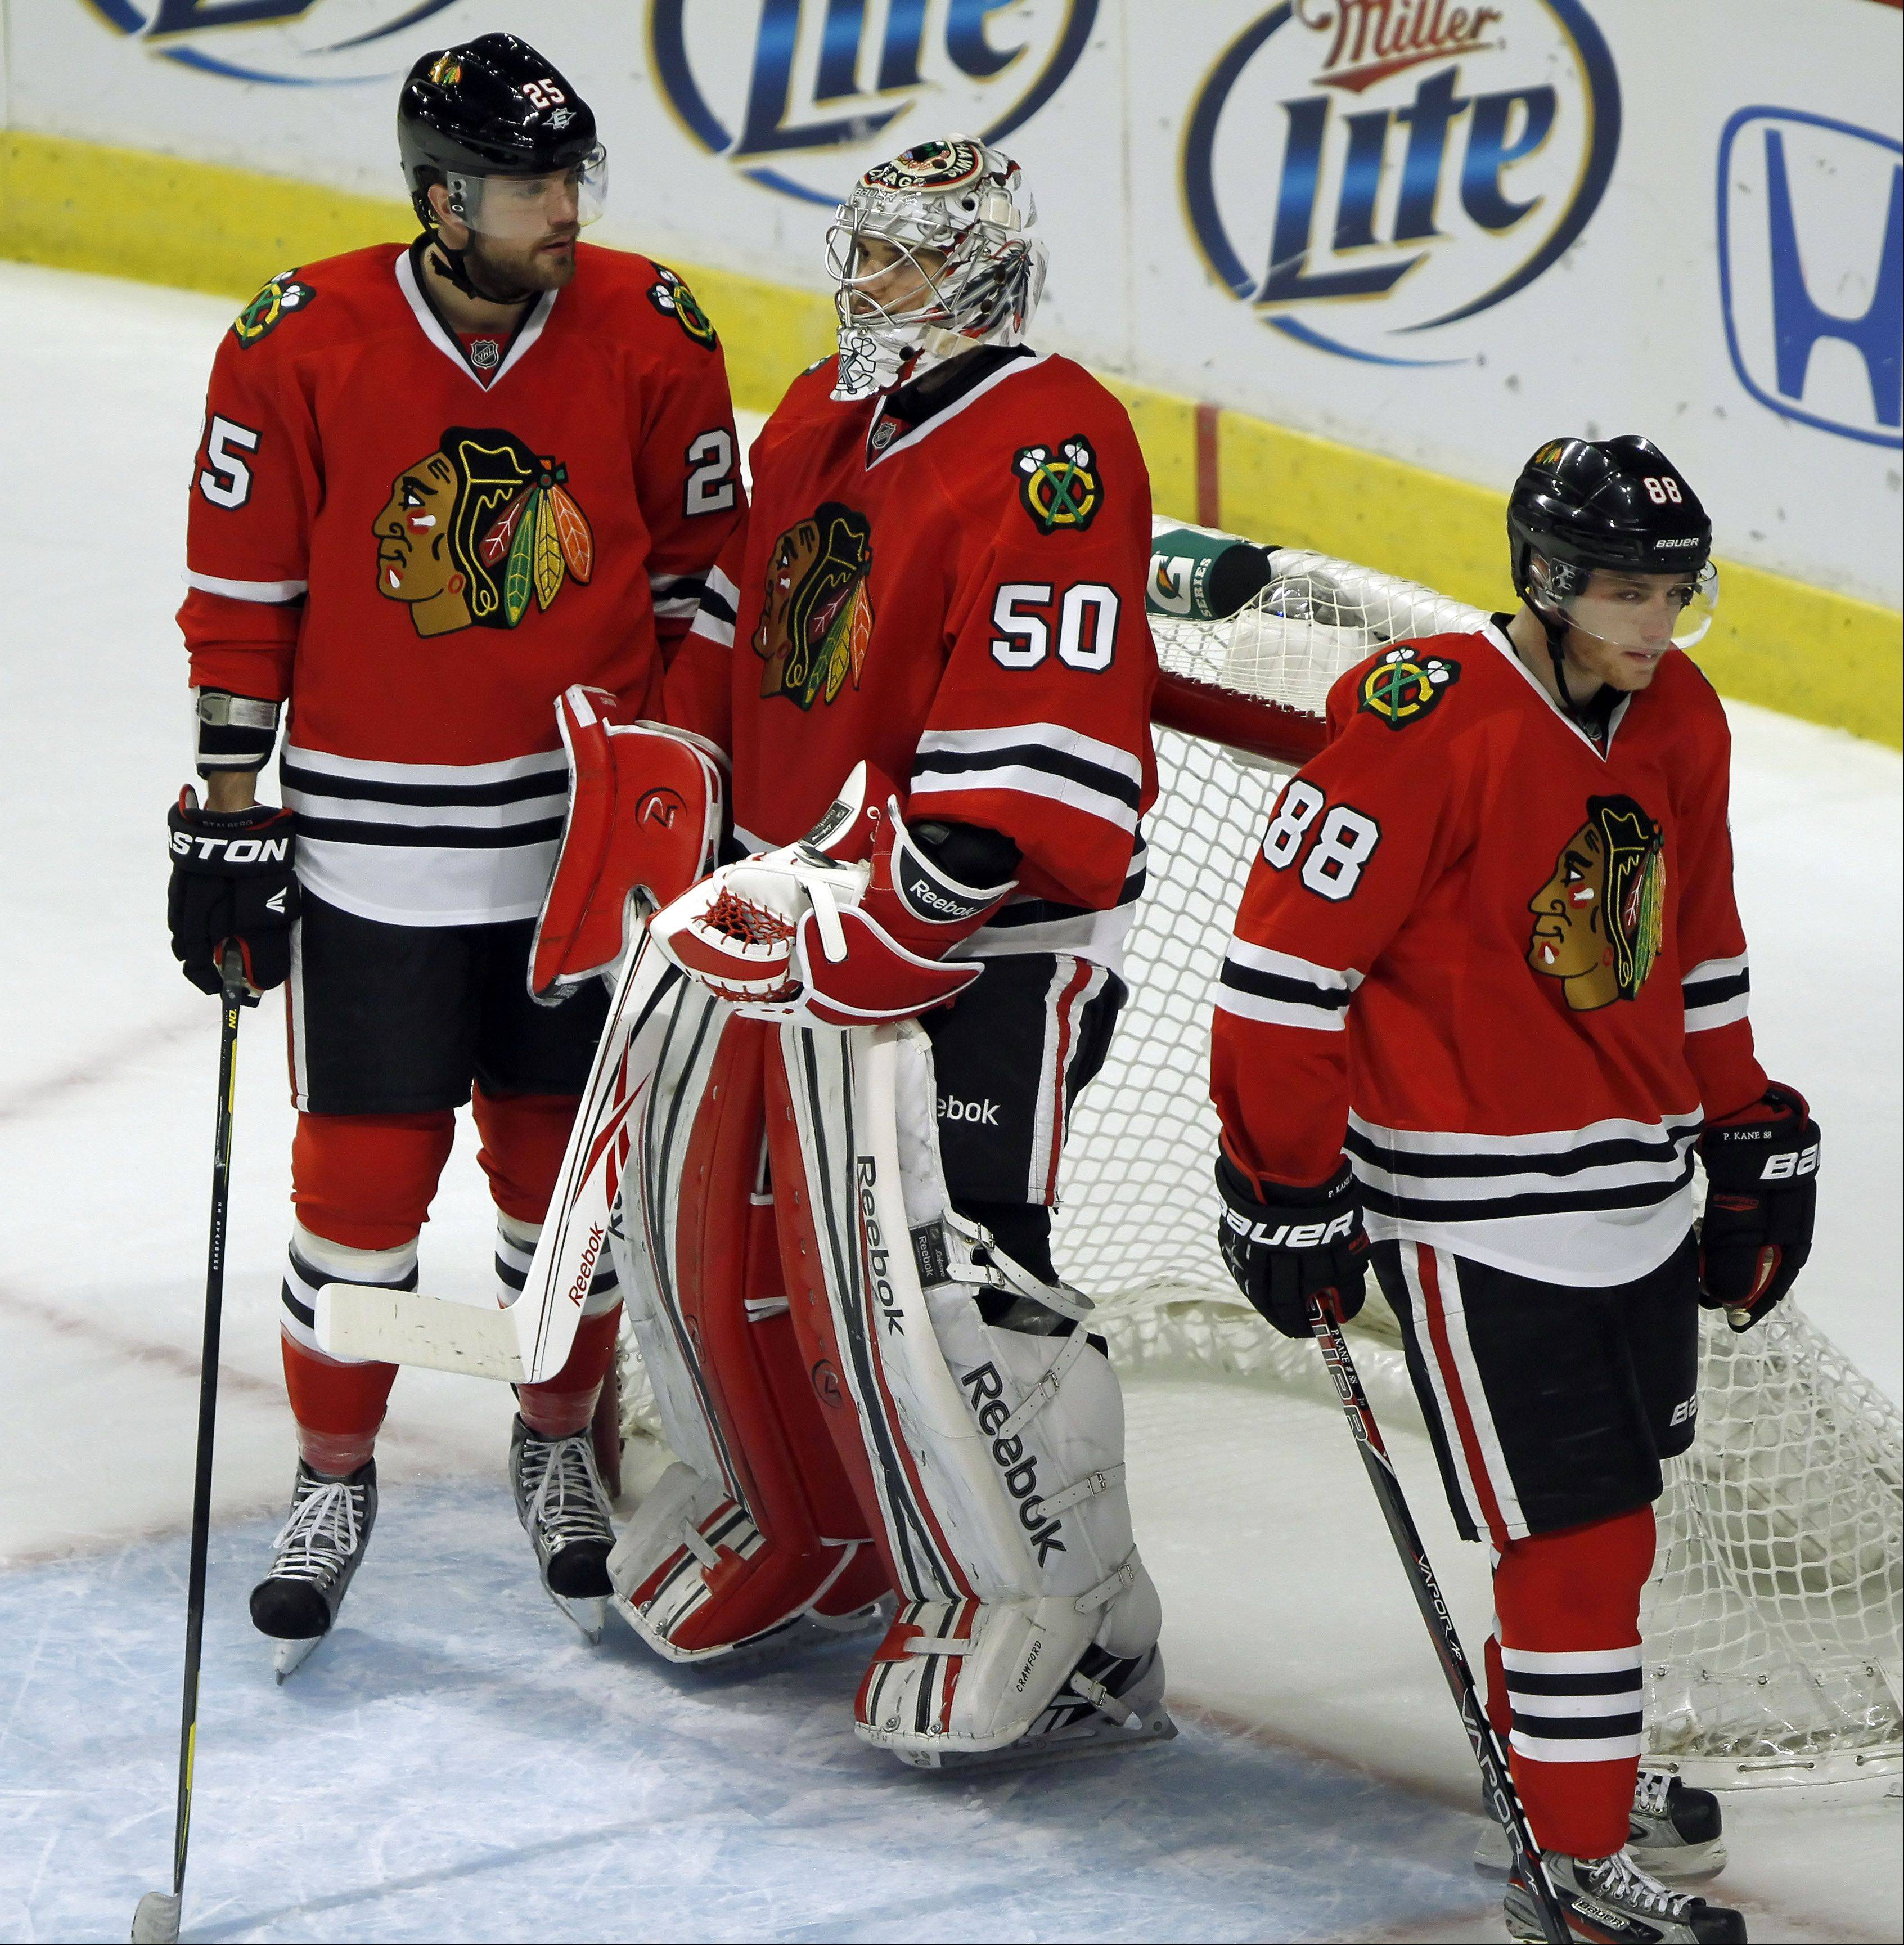 Chicago Blackhawks' left wing Viktor Stalberg and right wing Patrick Kane talk with goalie Corey Crawford after the Coyotes' fourth goal.